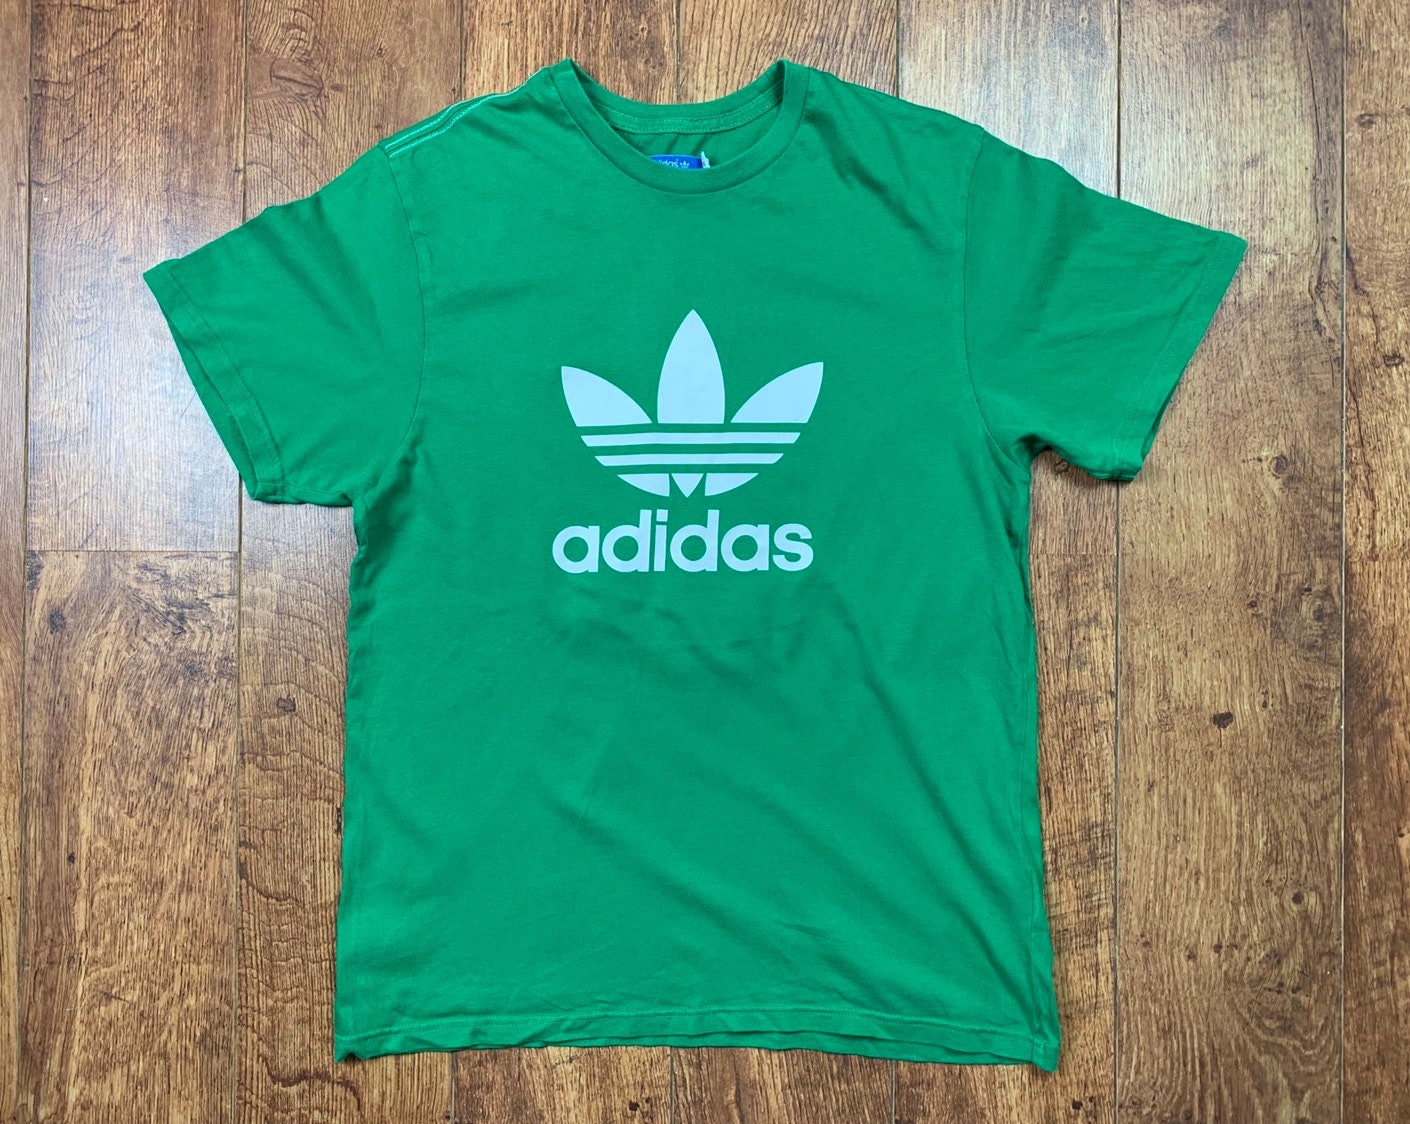 Men's Vintage Adidas Originals T Shirt Top Tee Trefoil Green UK Size M Medium